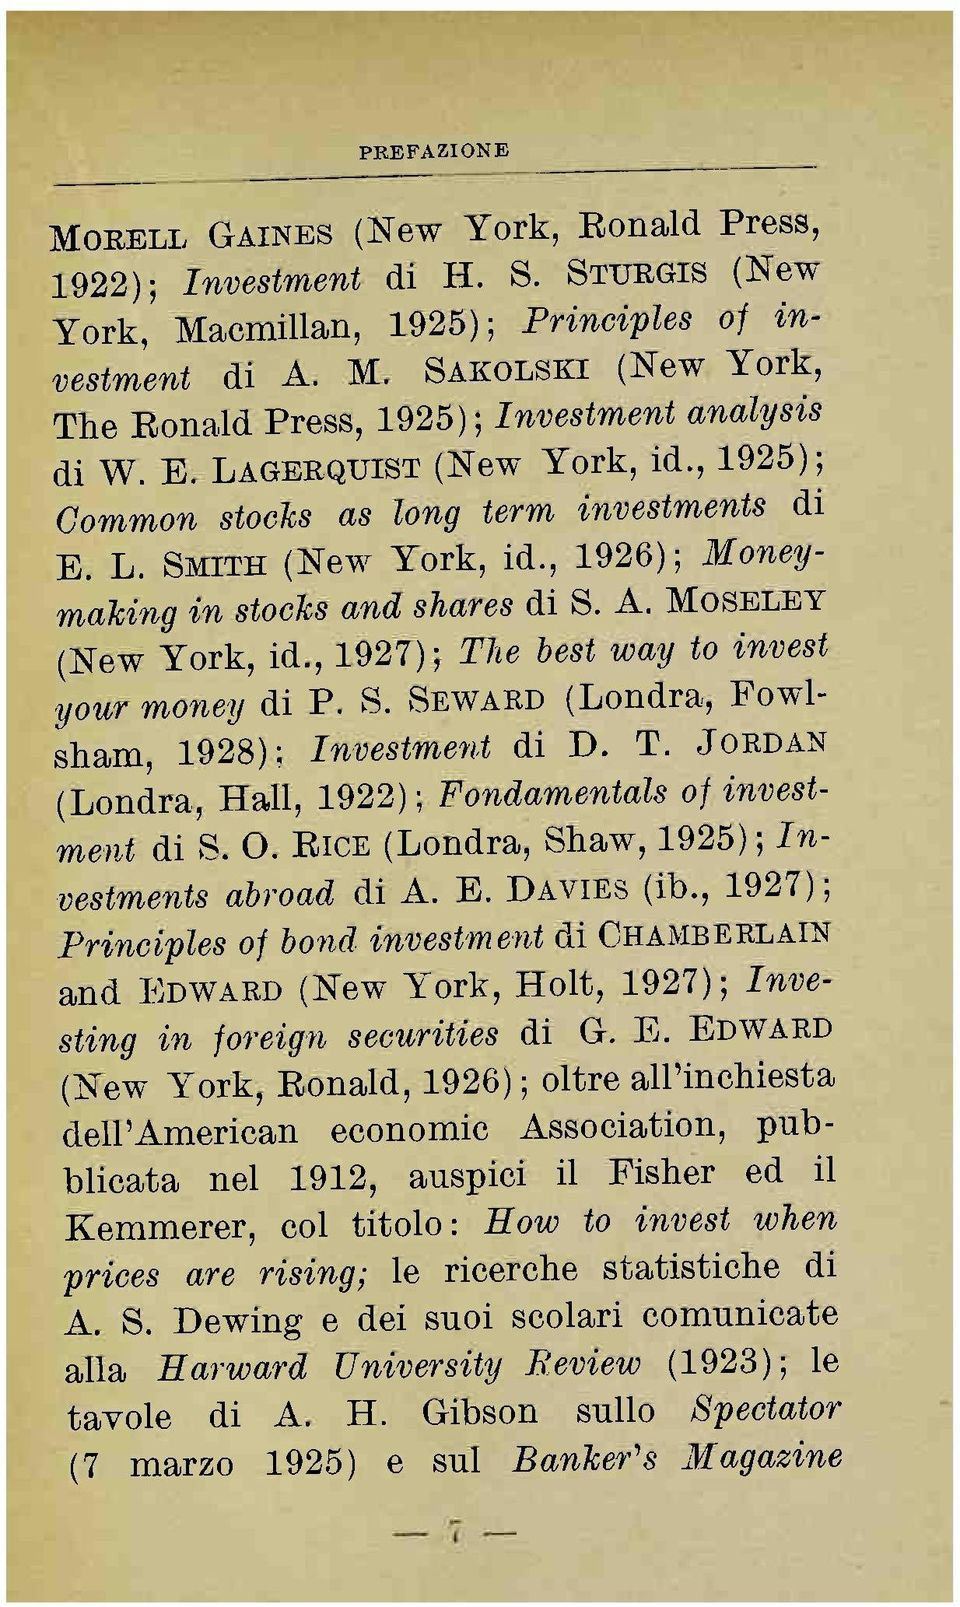 , 1927); The best way to invest your money di P. S. SEWARD (Londra, Fowlsham, 1928); Investment di D. T. JORDAN (Londra, Hall, 1922) ; Fondamentals of investment di S. O.